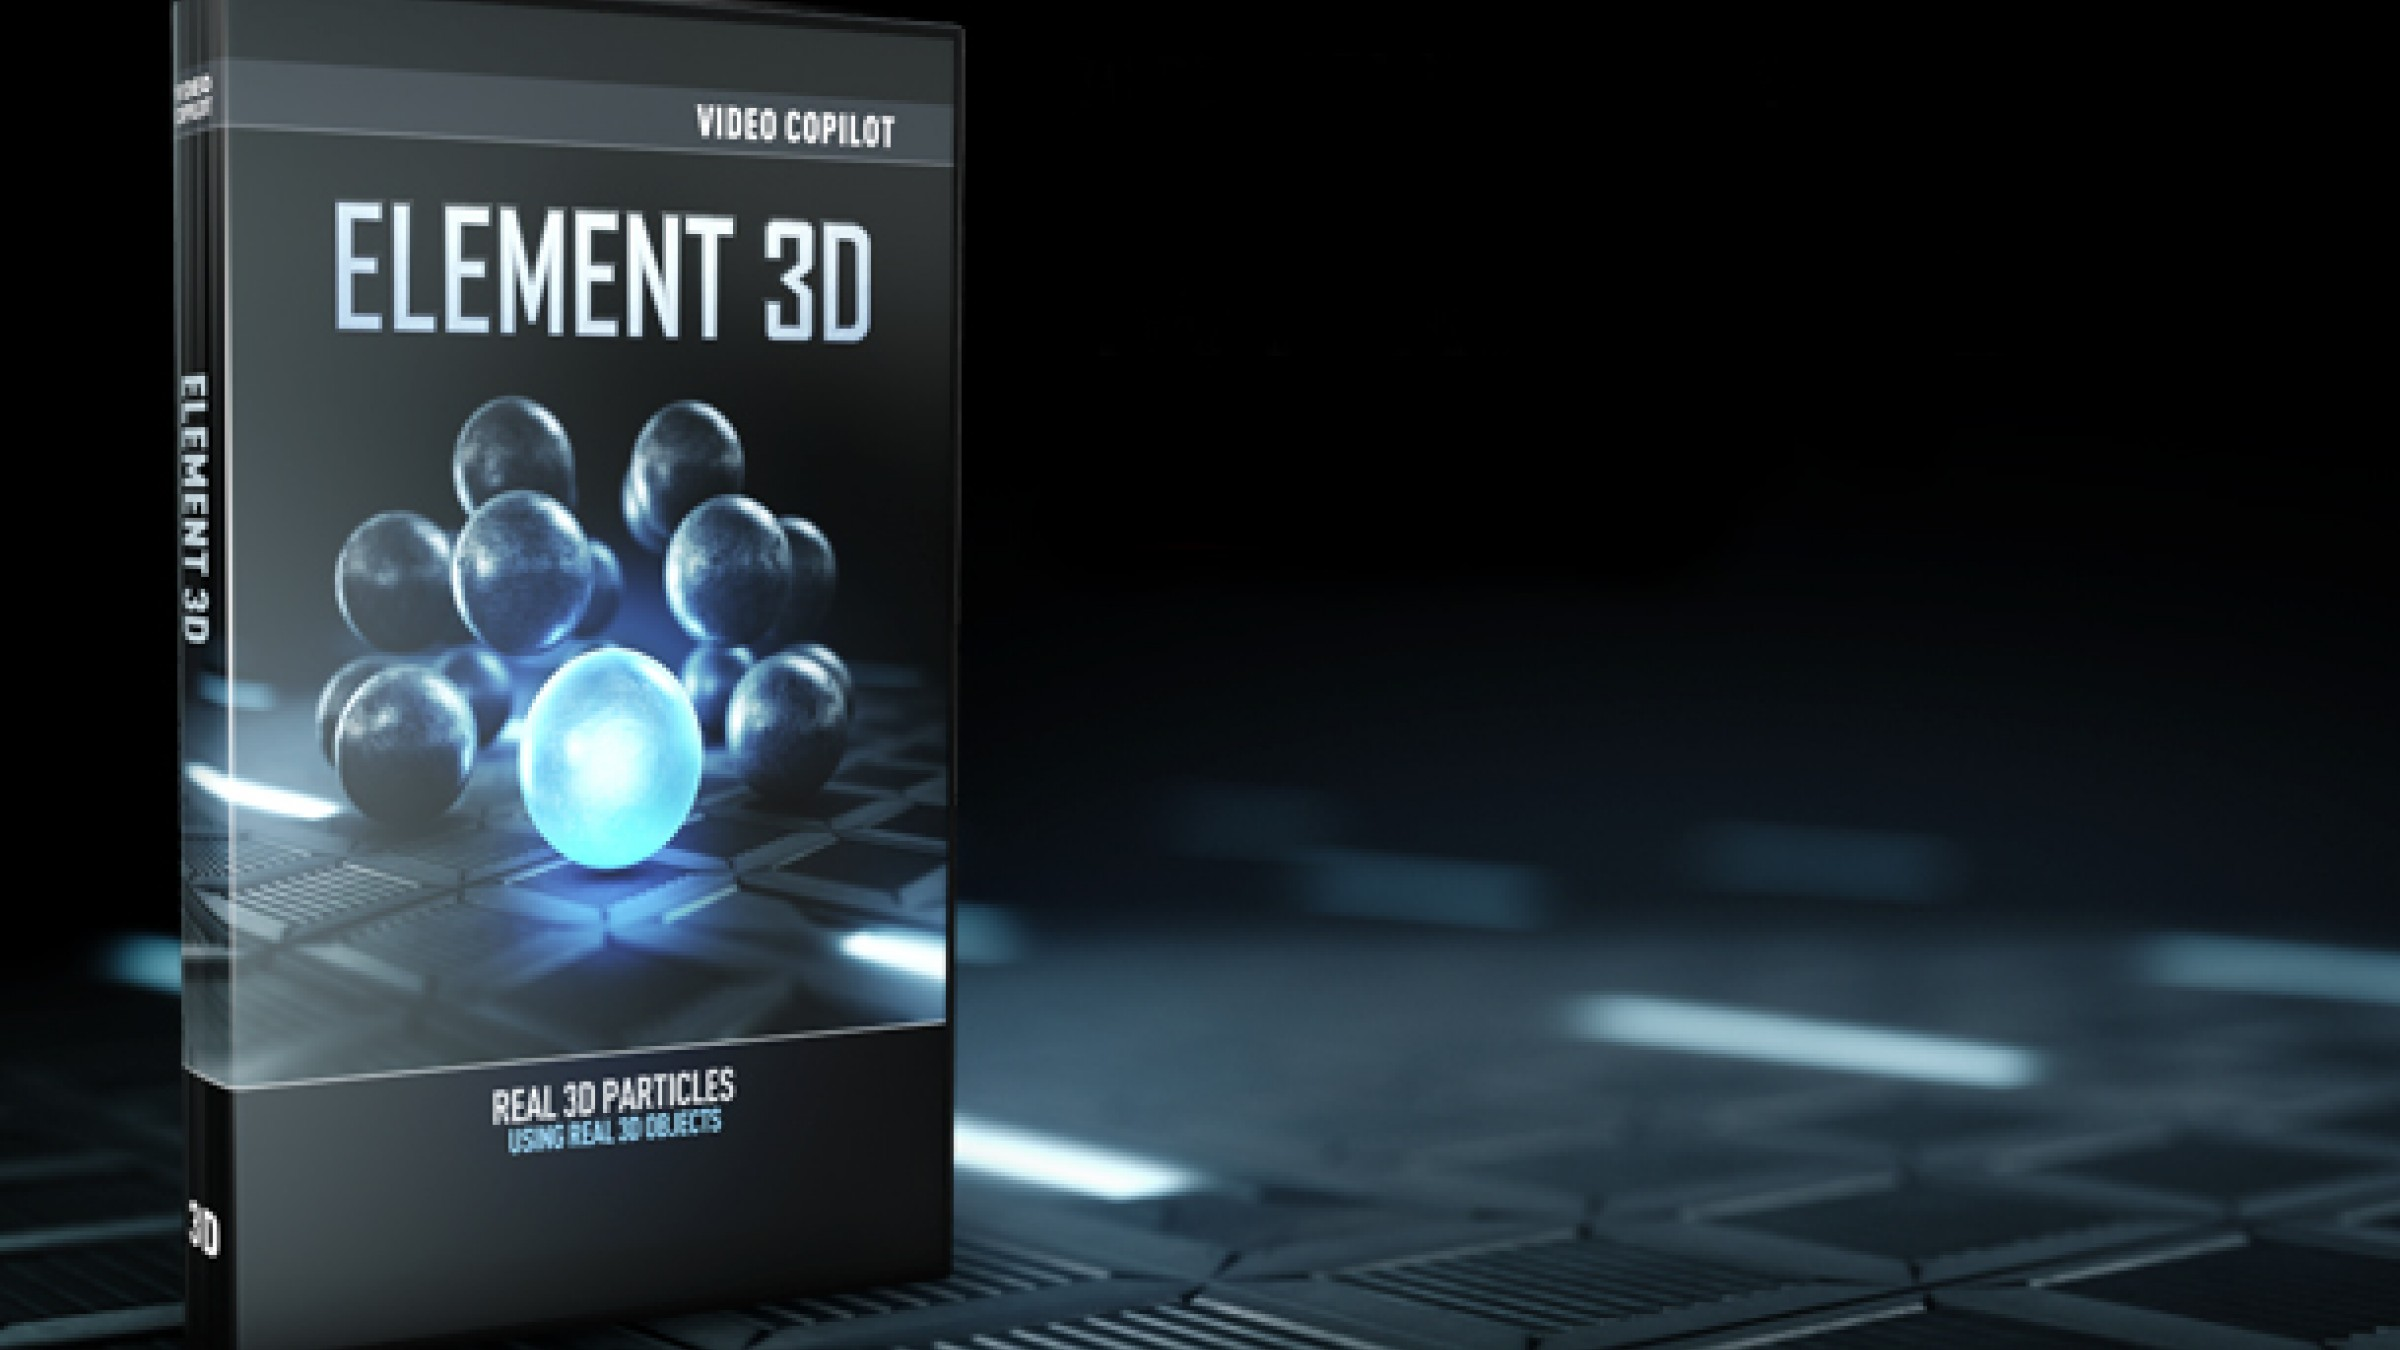 Element 3D: 3 New Tutorials and How to Start Making Your Own 3D Content